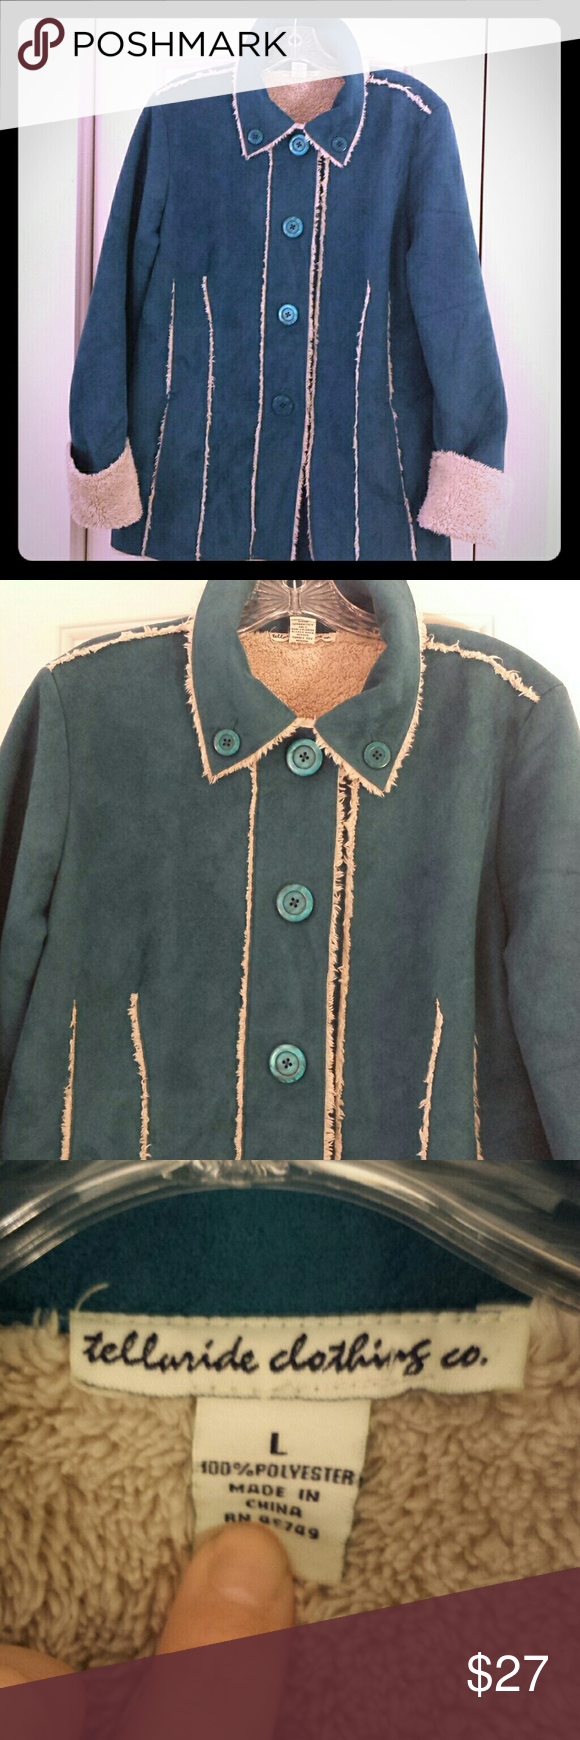 Telluride Clothing Teal Faux Suede Sherpa Jacket L Telluride Clothing Teal Faux Suede Sherpa Jacket Large....Very Unique Color! Front pockets...button front...Like New...hardly worn...no flaws... Telluride Clothing Co Jackets & Coats